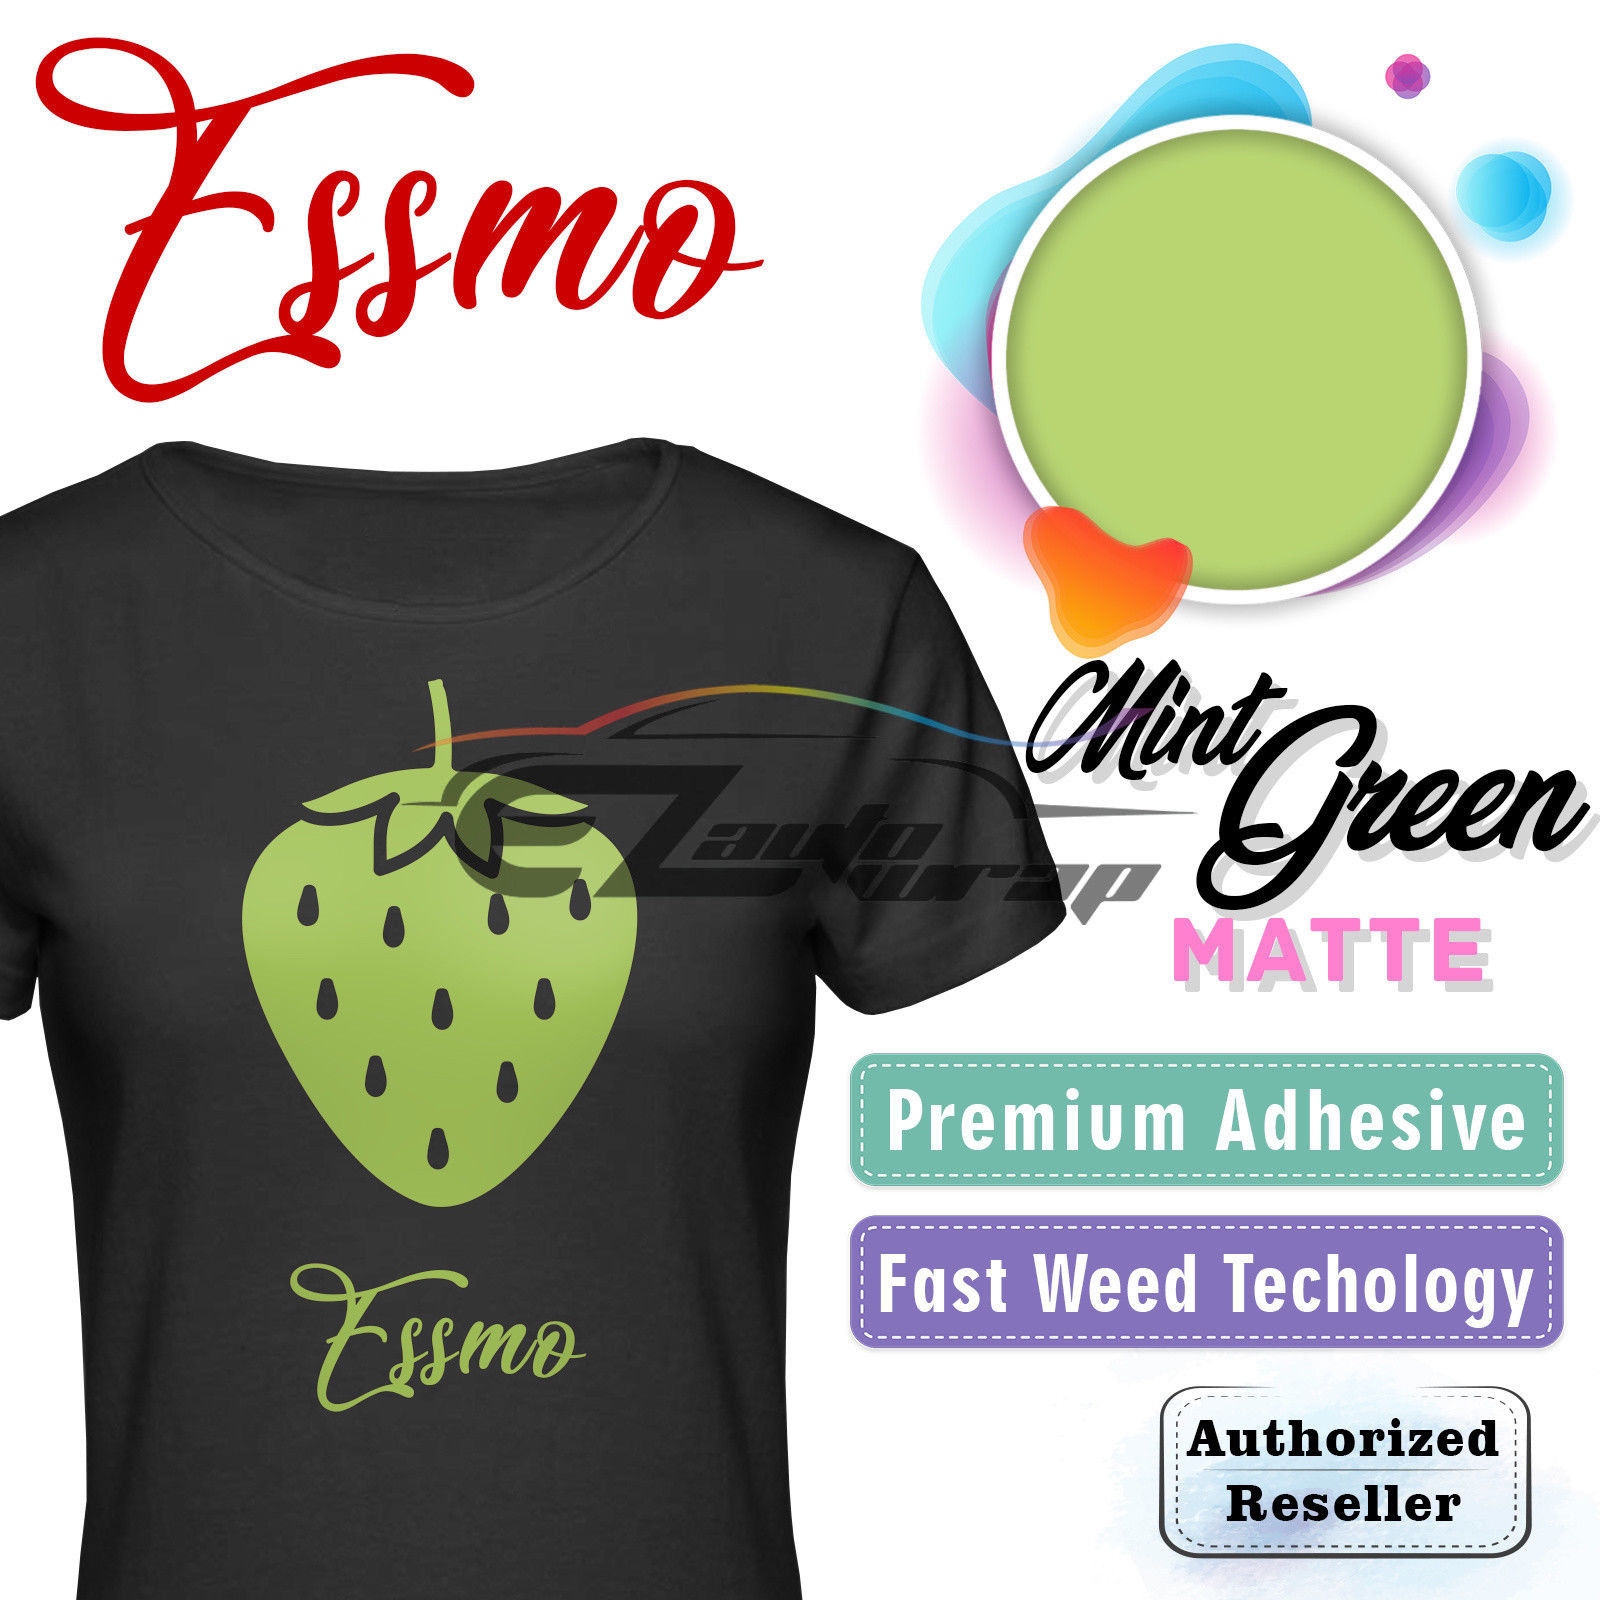 "ESSMO Mint Green Matte Solid Heat Transfer Vinyl HTV Sheet T-Shirt 20"" Wide Iron On Heat Press 20""x84"""